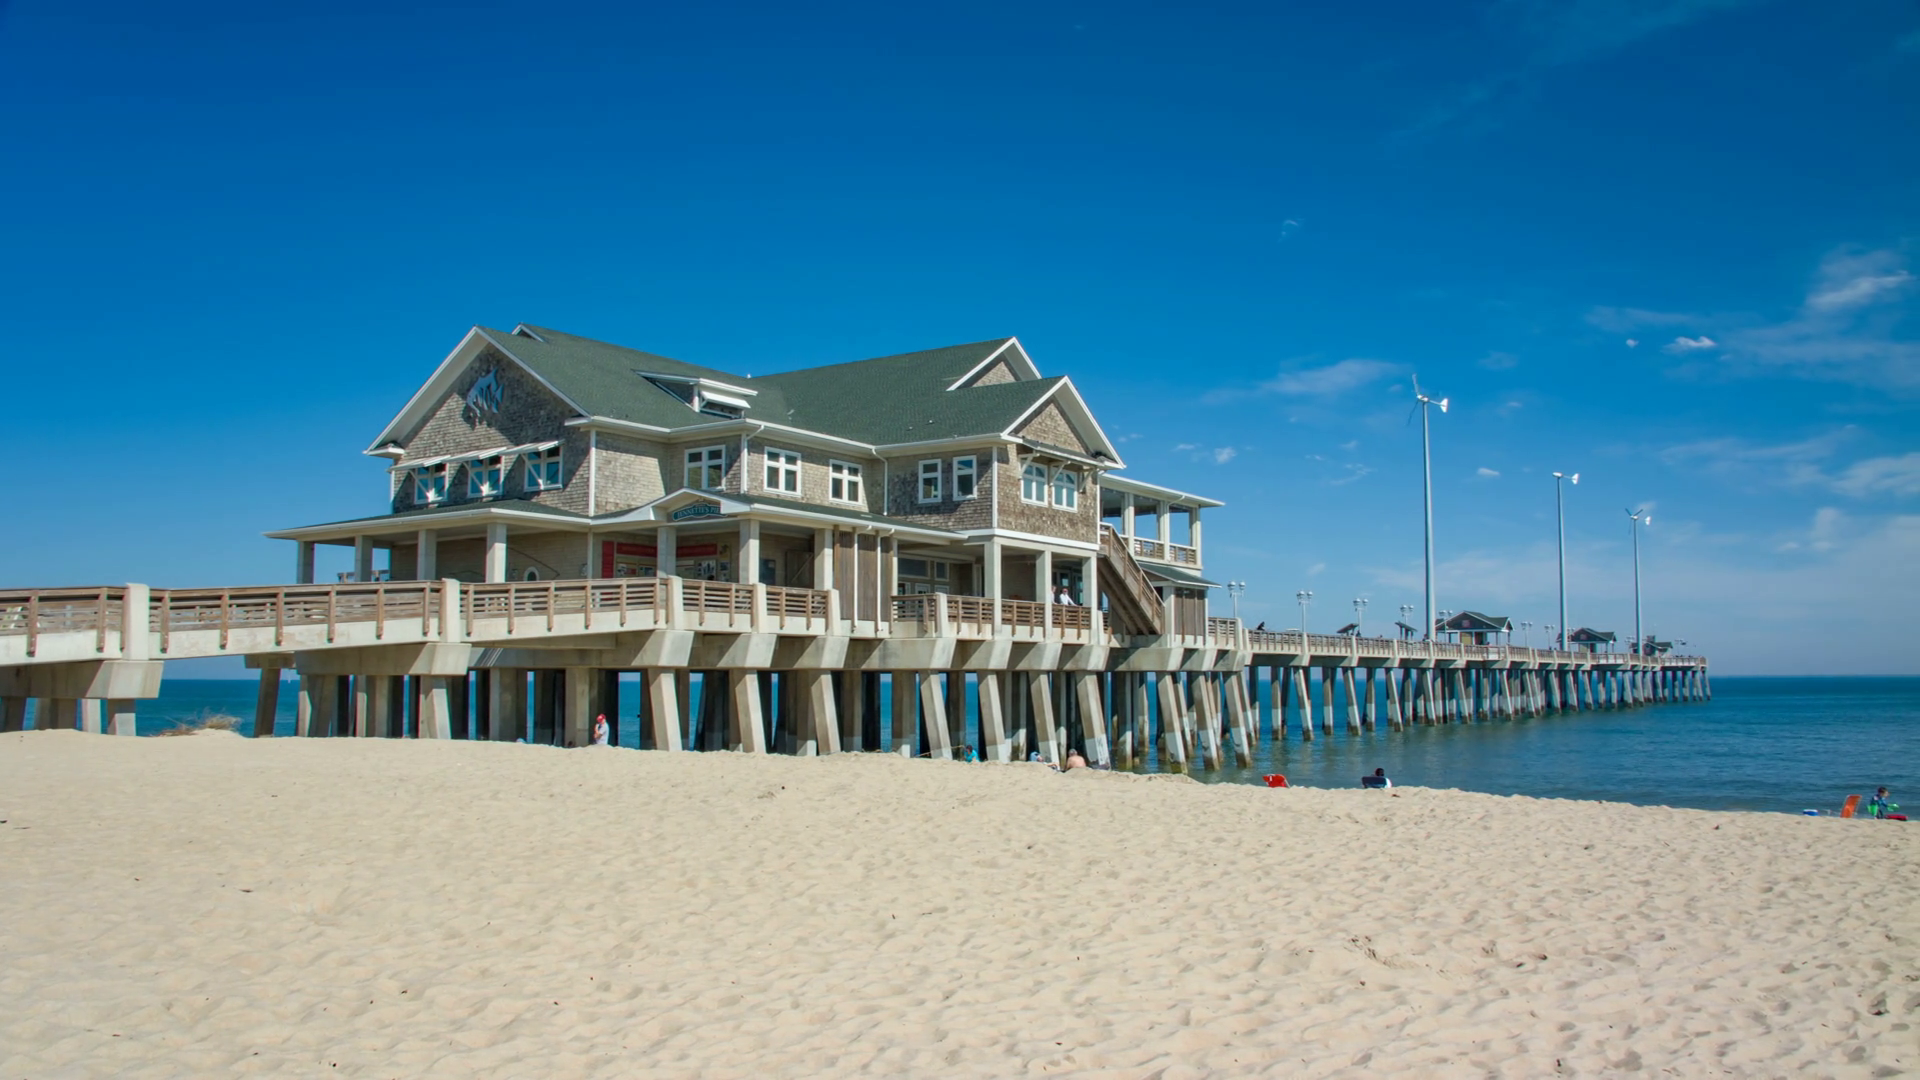 Jennettes Pier in Nags Head on the Outer Banks of North Carolina 1920x1080